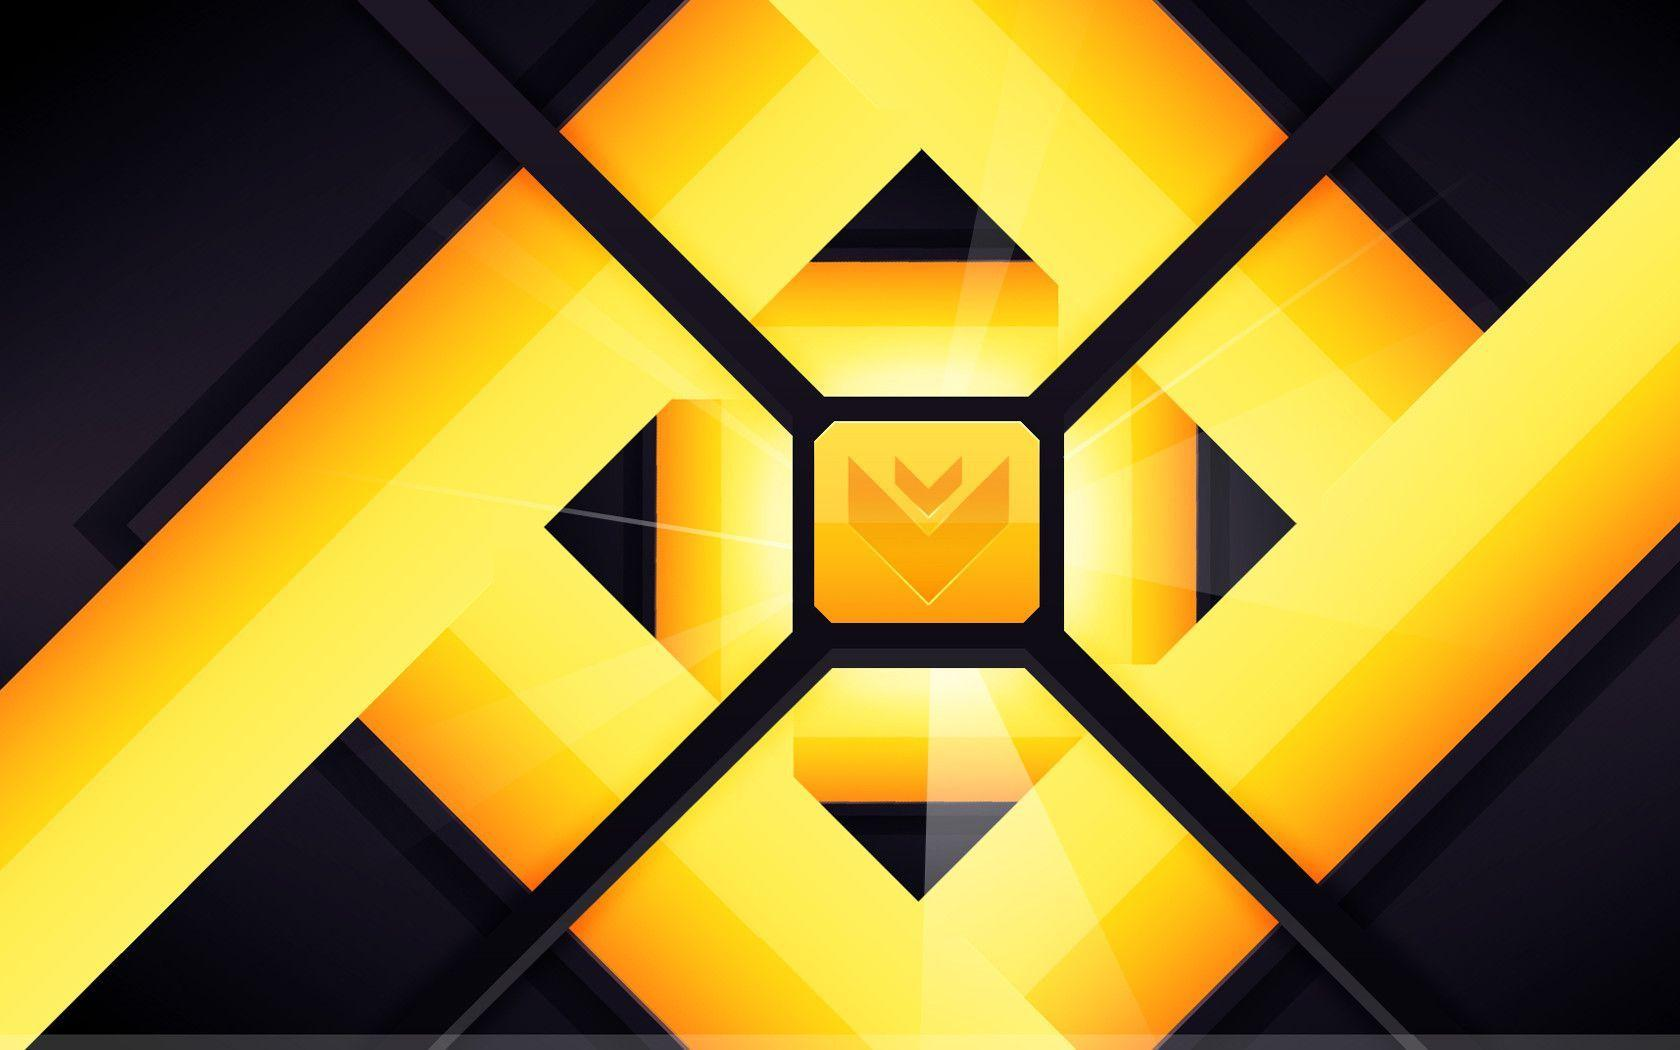 Wallpapers For Cool Yellow Wallpaper